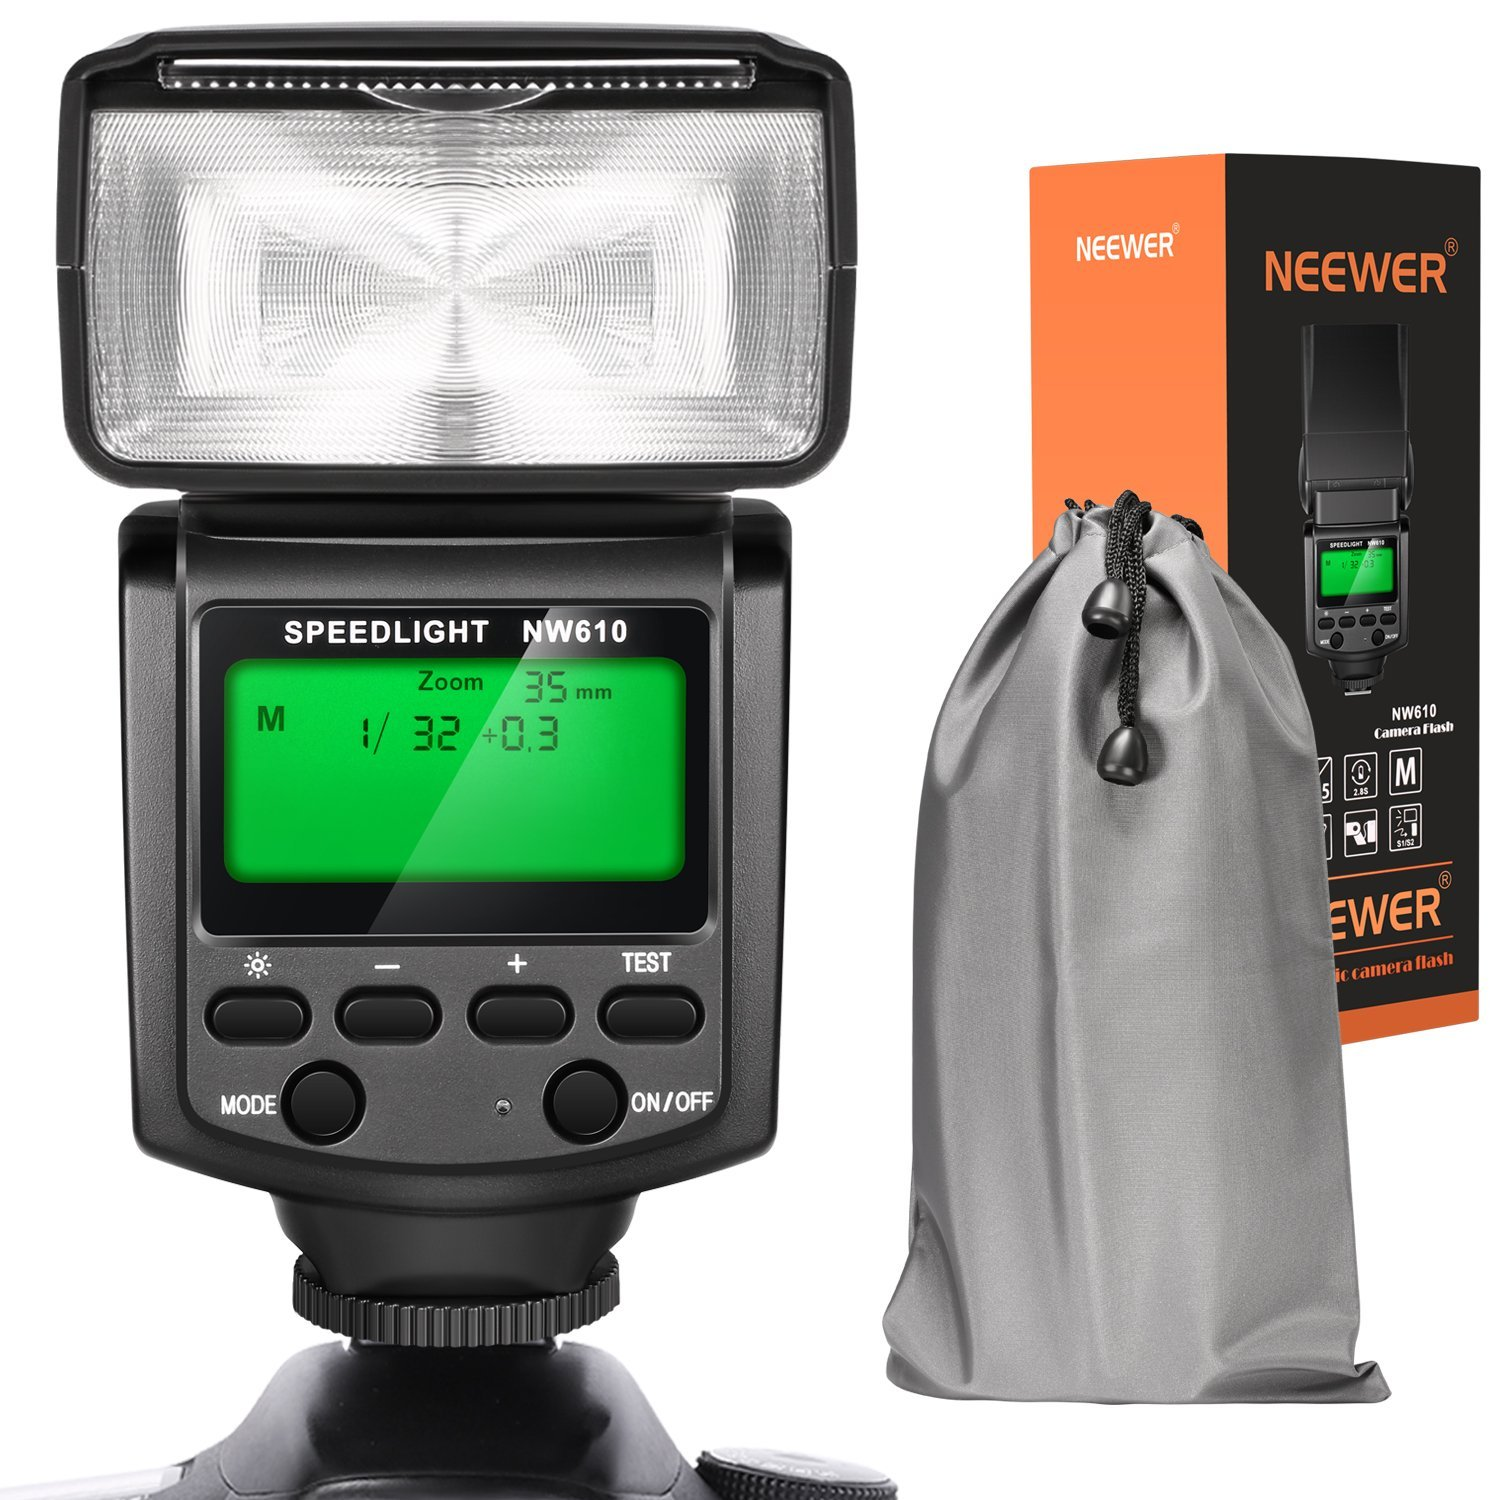 Neewer NW610 Manual Flash Speedlite With LCD Display for Canon Nikon Panasonic Olympus Pentax with Standard Hot Shoe and Sony Camera with New Mi Hot Shoe like Sony A7 A7S/A7SII A7II A6000 A6300 A6500 by Neewer